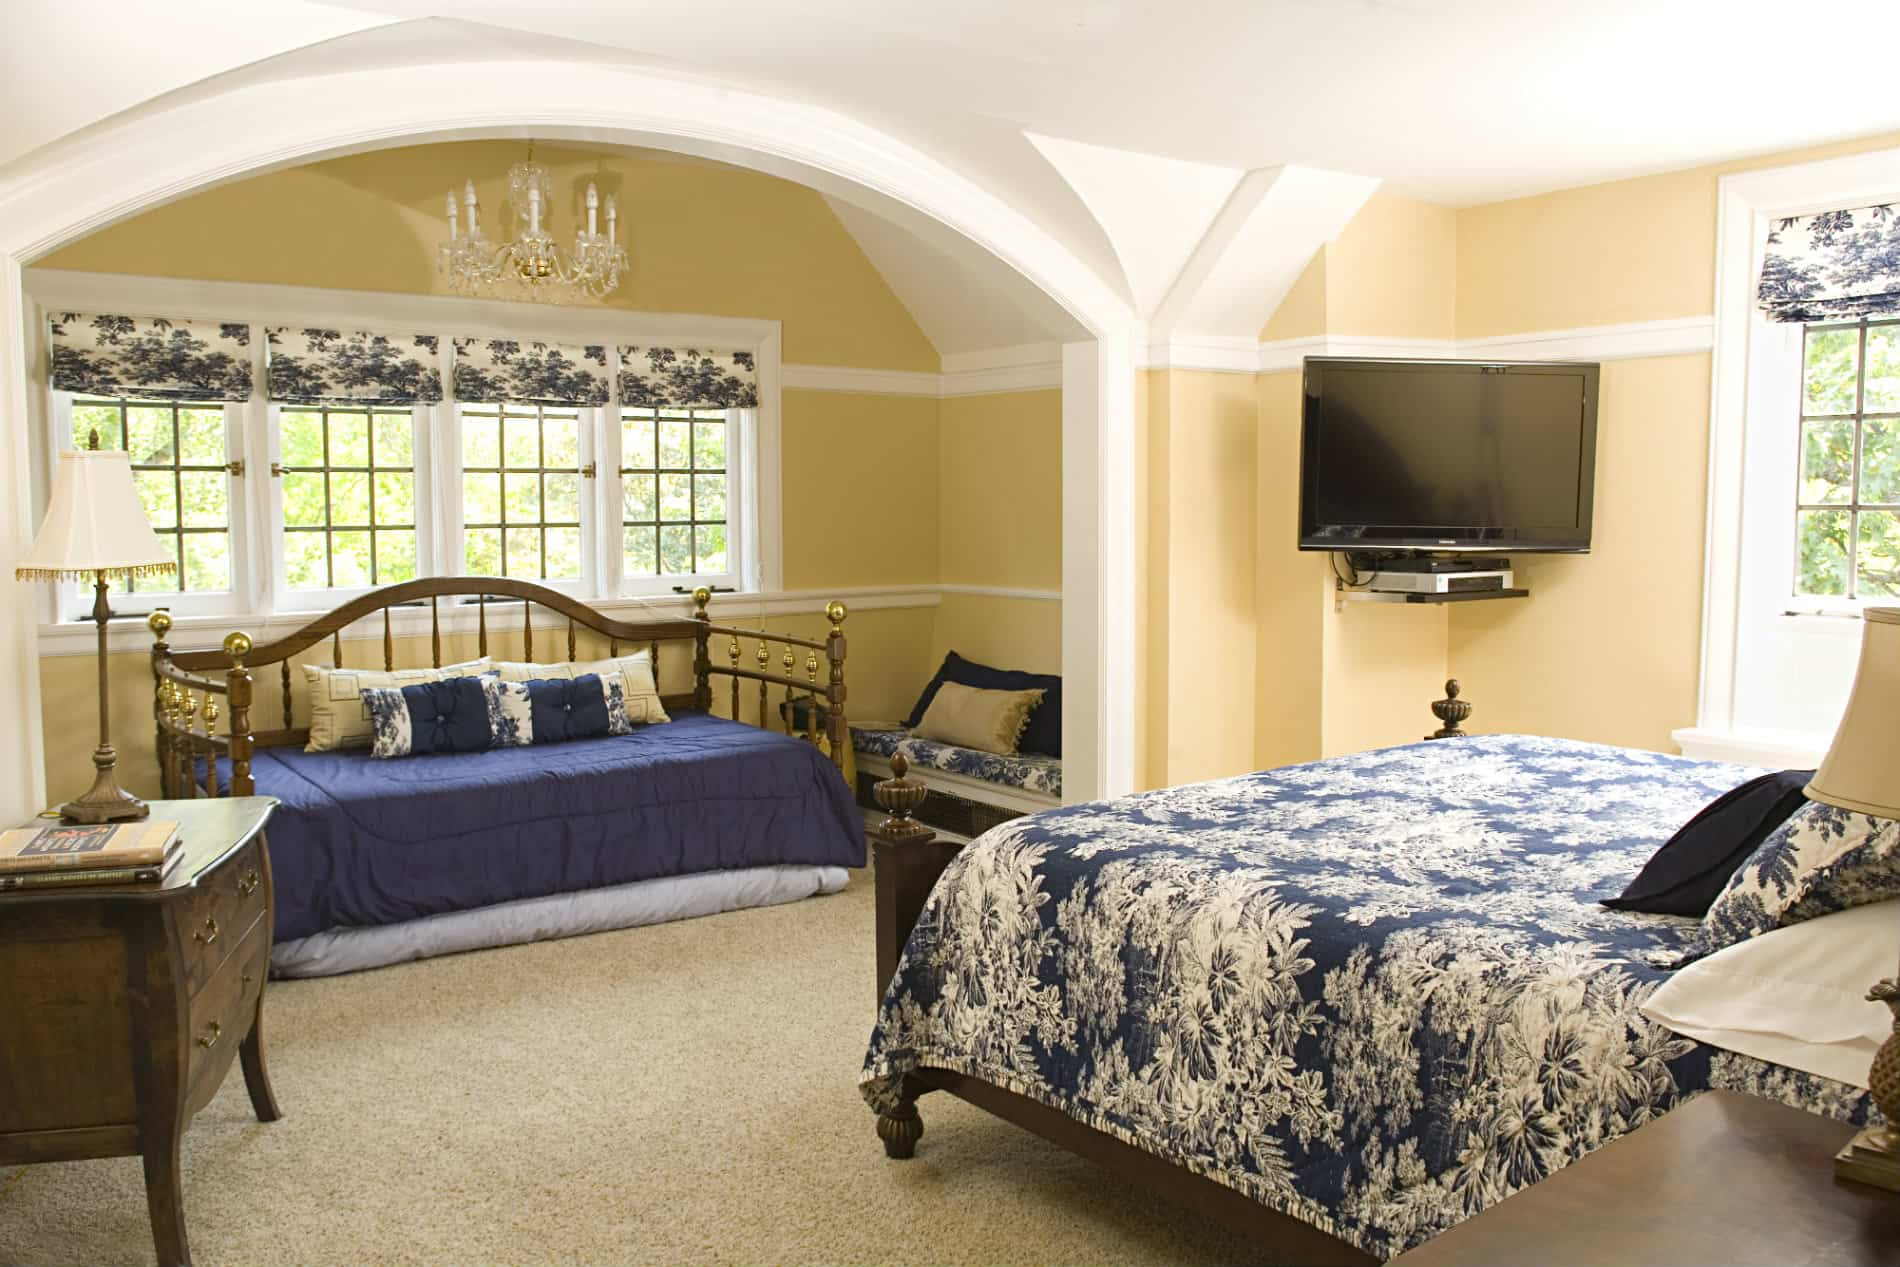 Twin size bed agaist a window looking at a queen size window with a blue comforter.